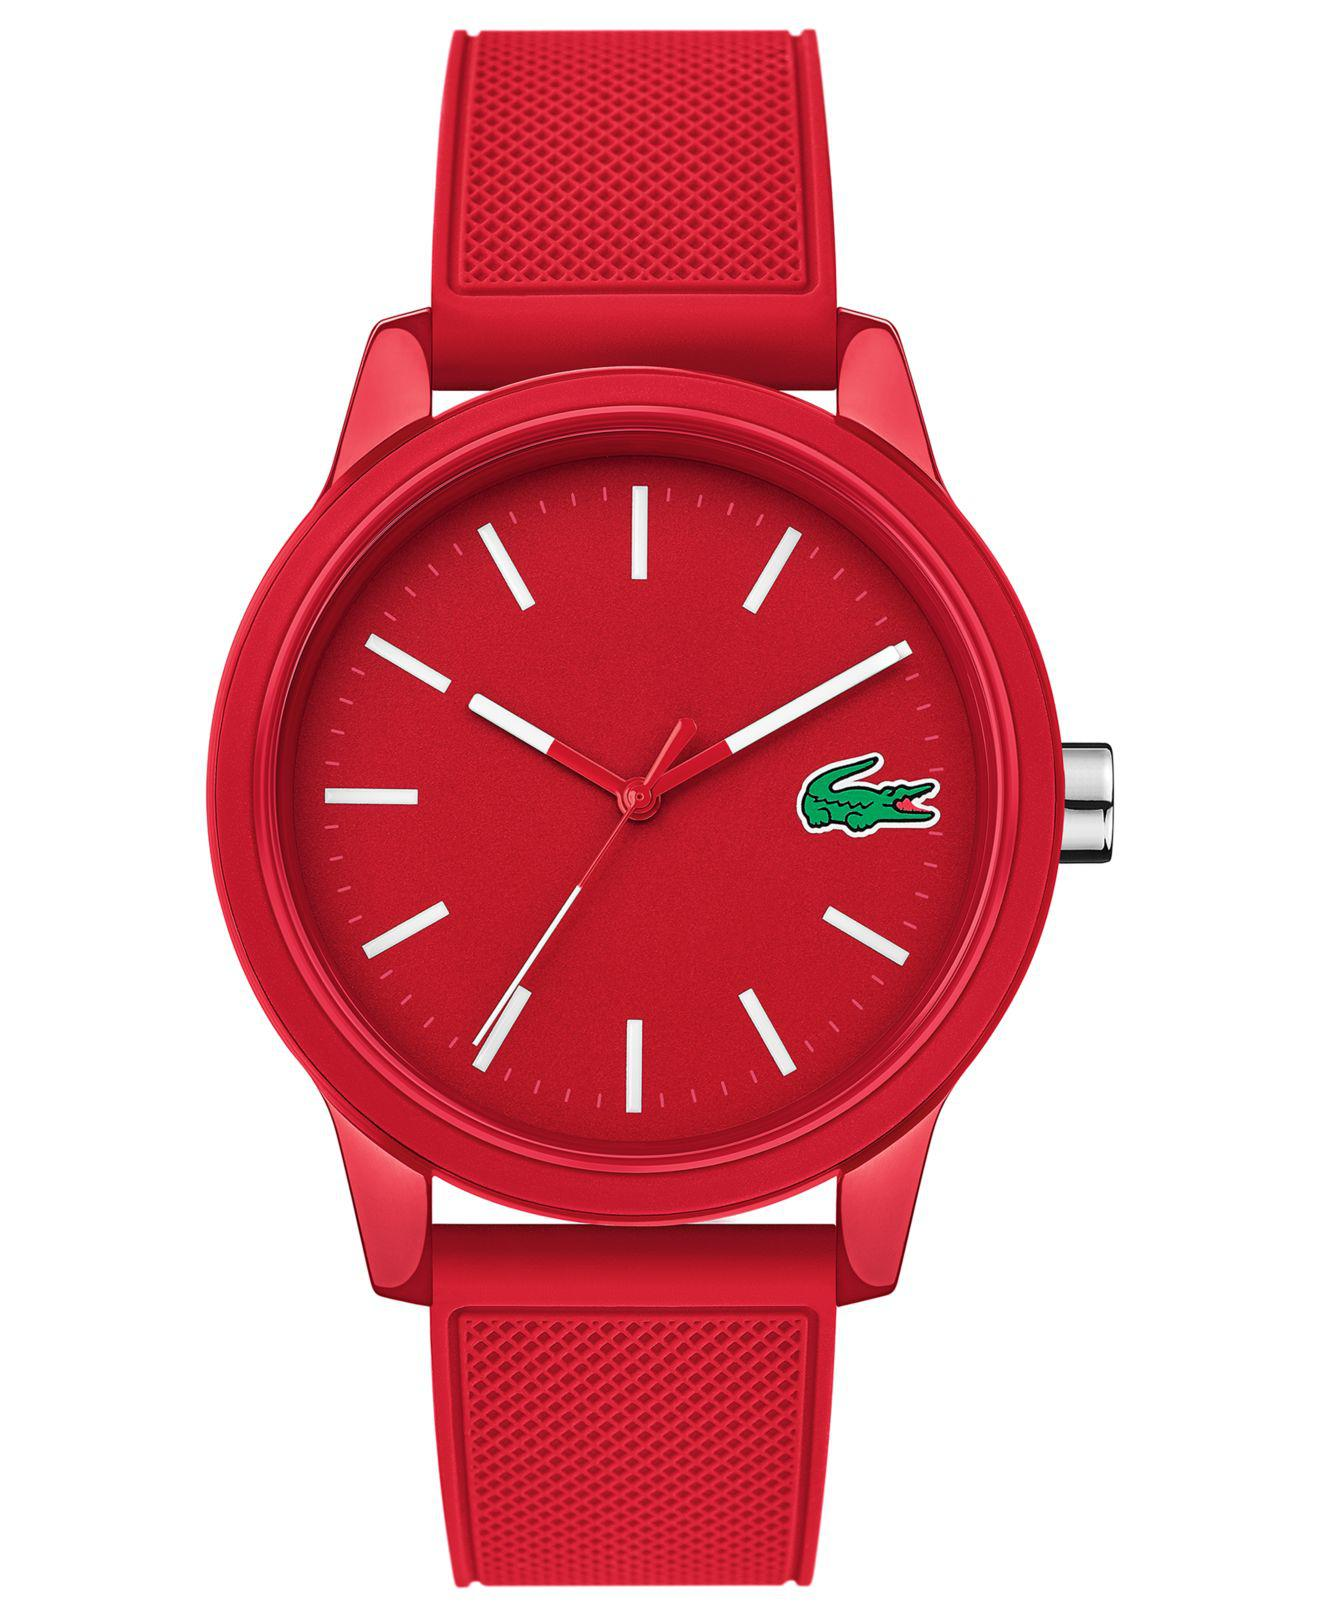 Lacoste. Men's 12.12 Red Silicone Strap Watch 42mm